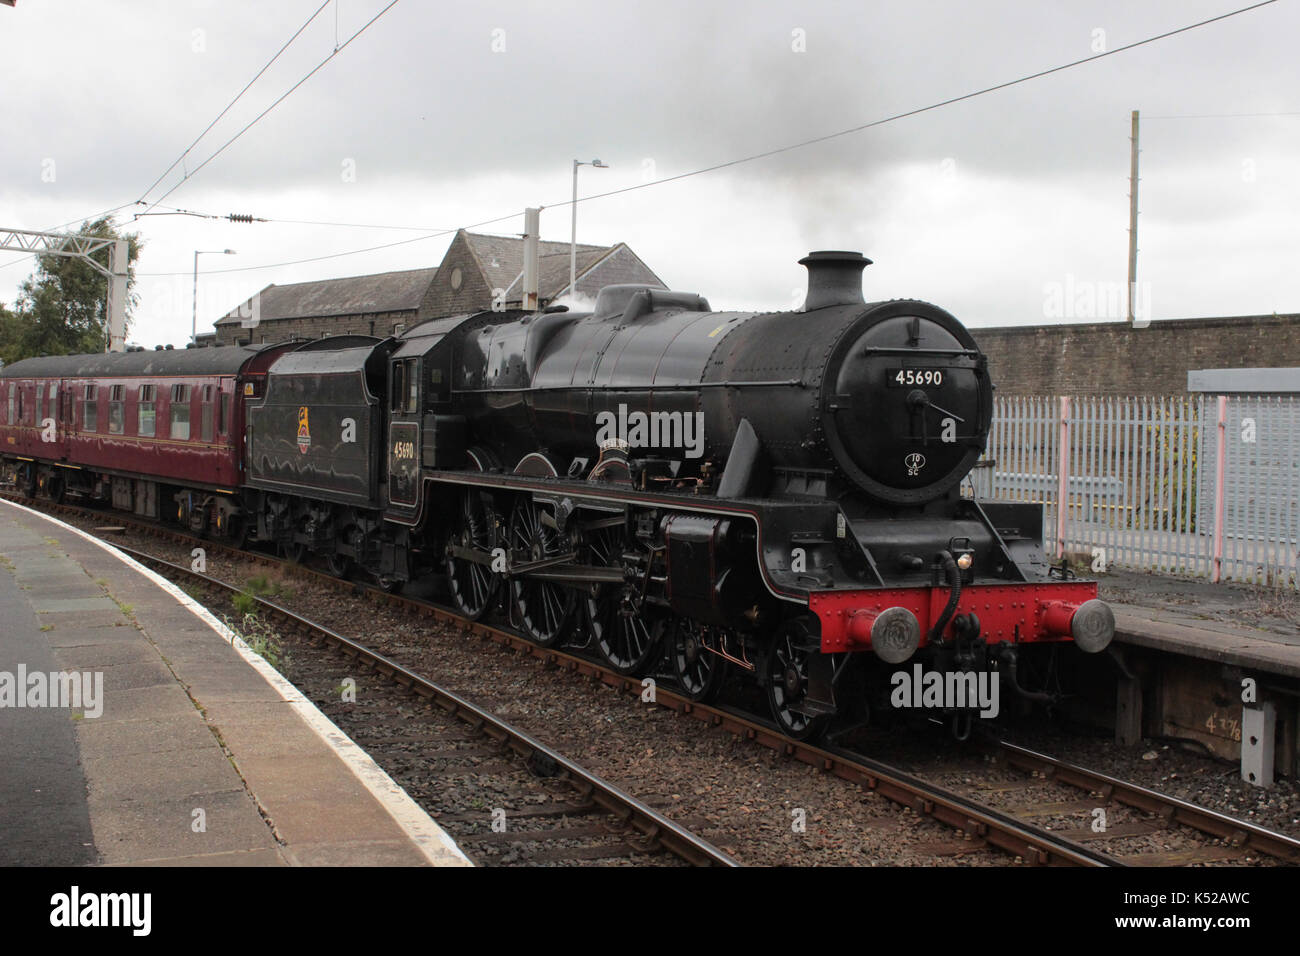 Jubilee class steam locomotive number 45690 named Leander arriving at Carnforth railway station seen entering Platform 1. - Stock Image